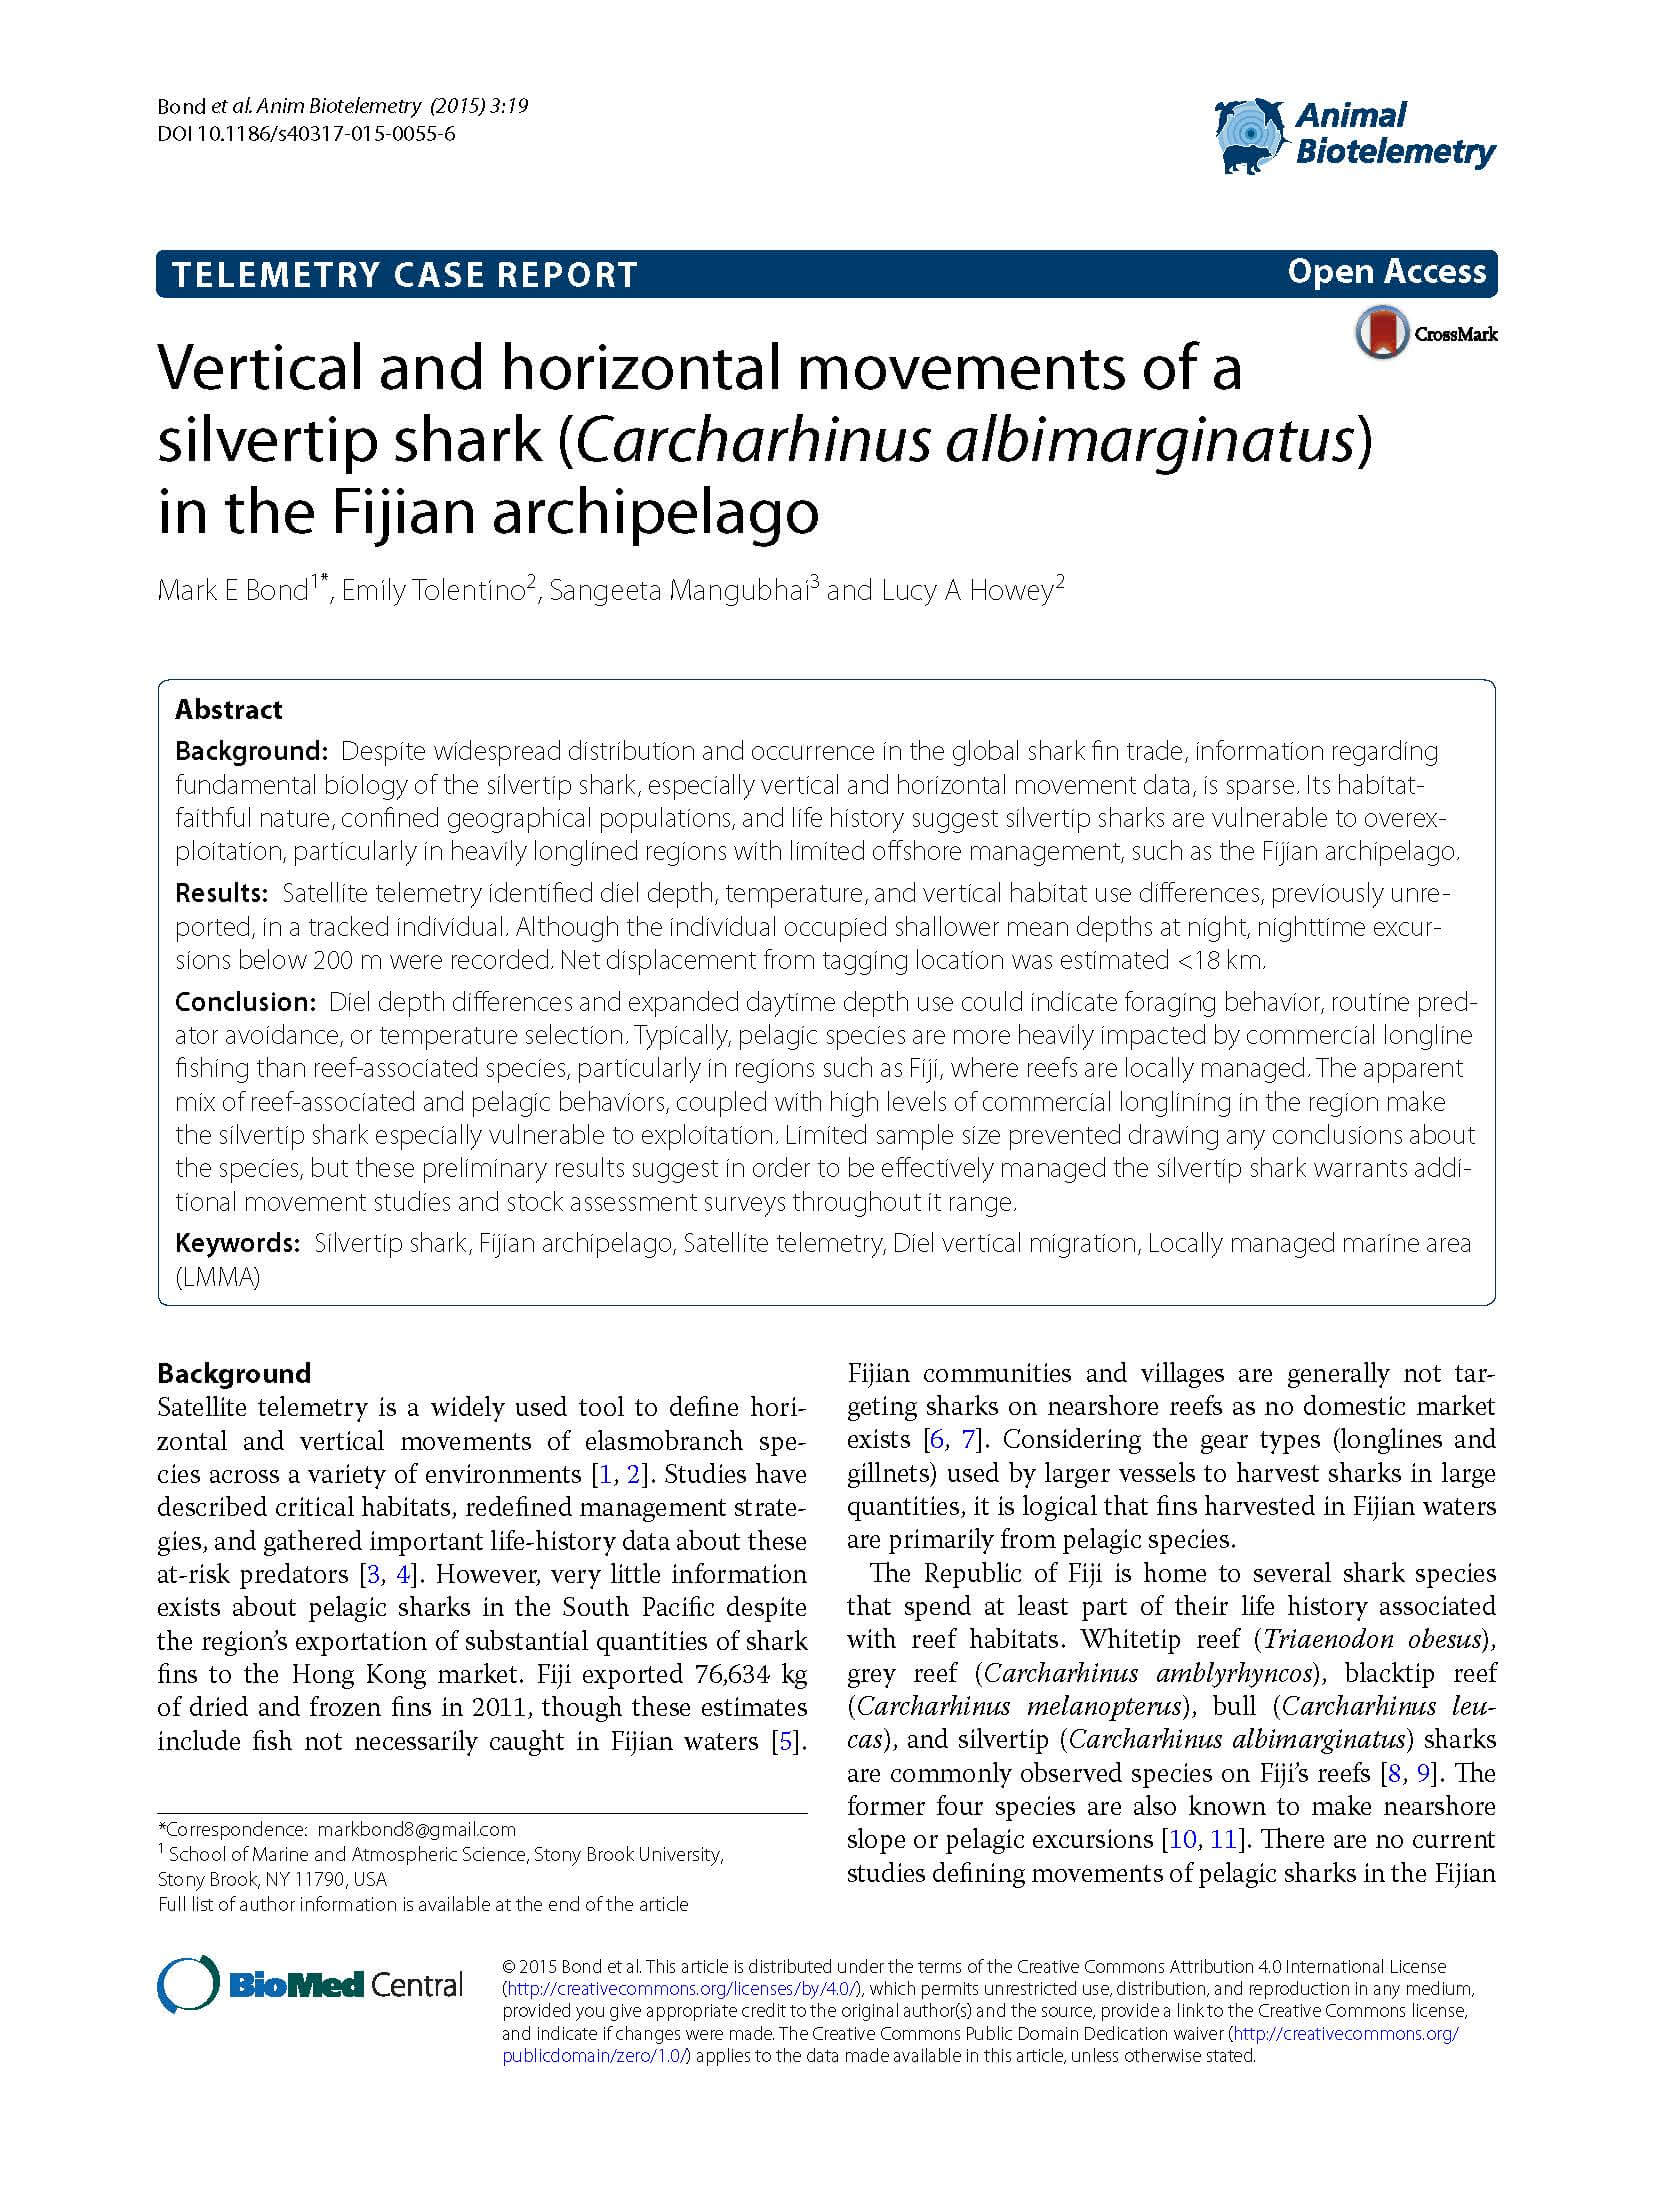 Vertical and Horizontal Movements of a Silvertip Shark (Carcharhinus Albimarginatus) in the Fijian Archipelago